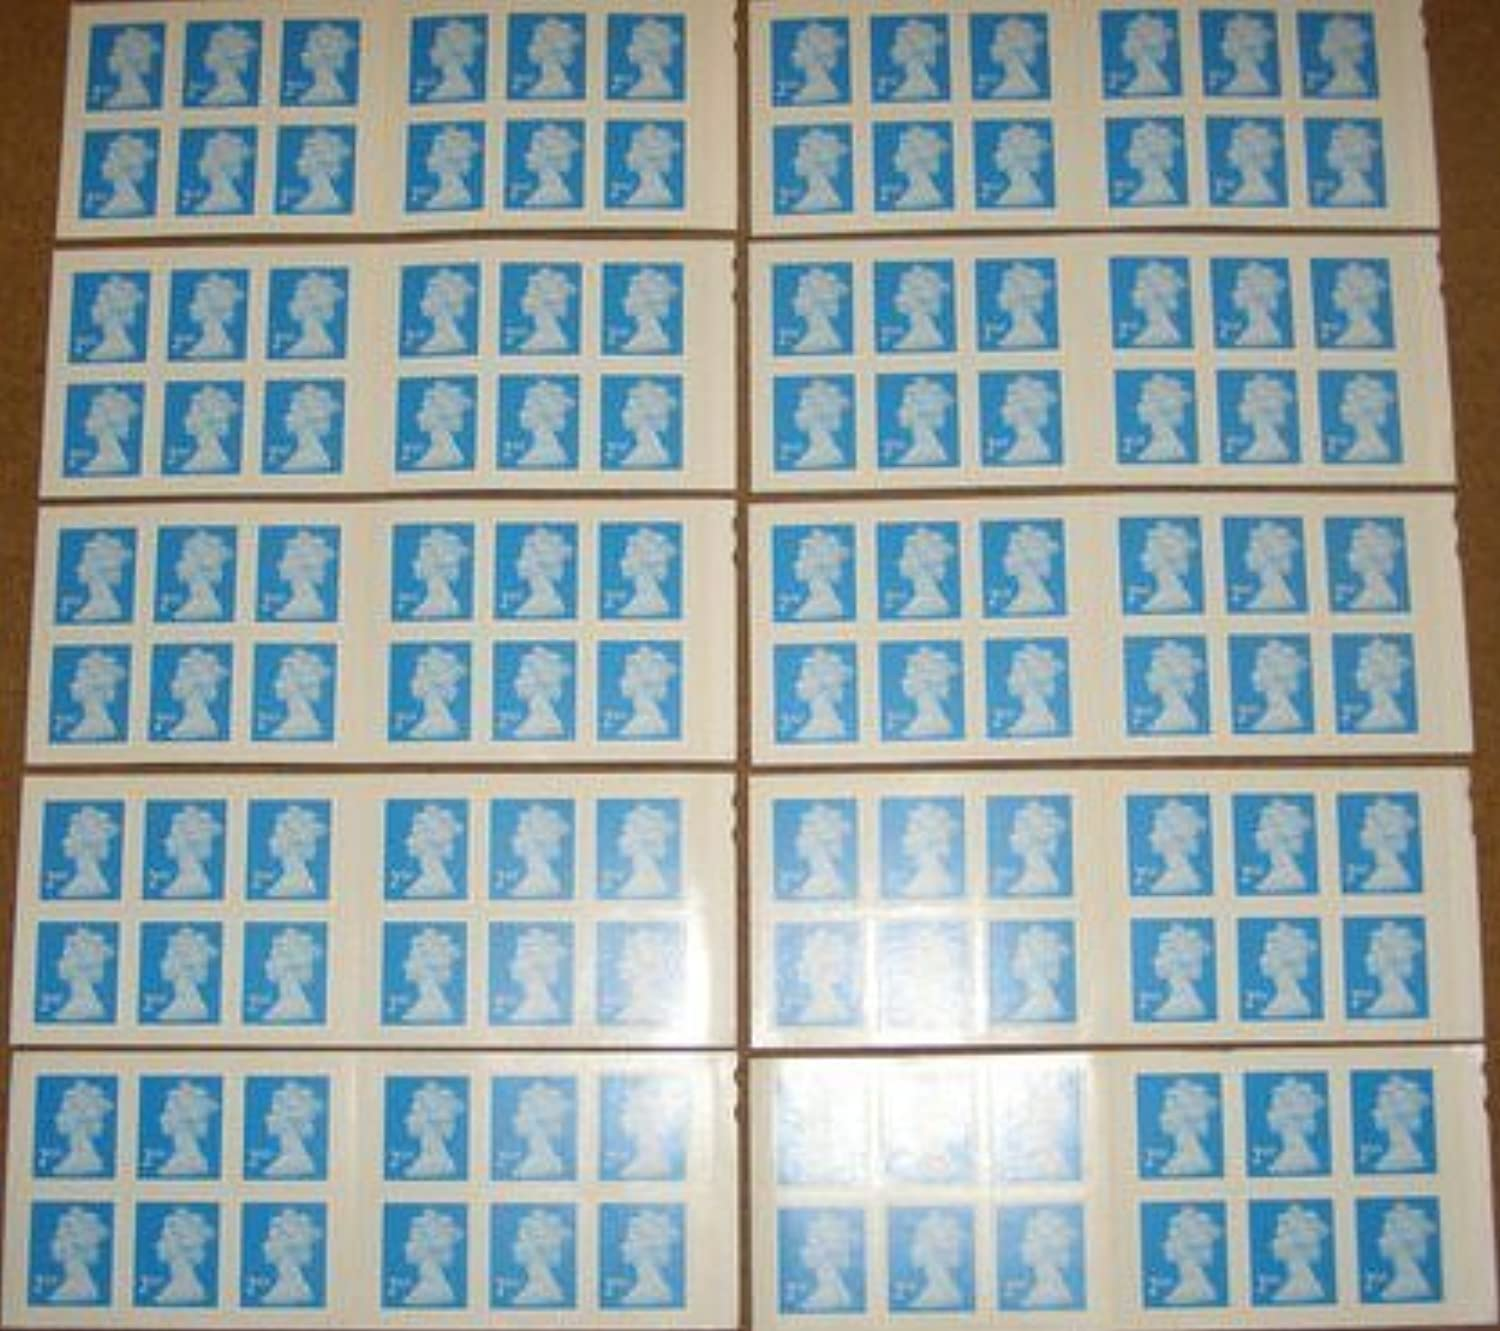 120 x 2nd Class Stamps - Royal Mail Postal Stamps Books - Self Adhesive Booklets Sheet by Royal Mail